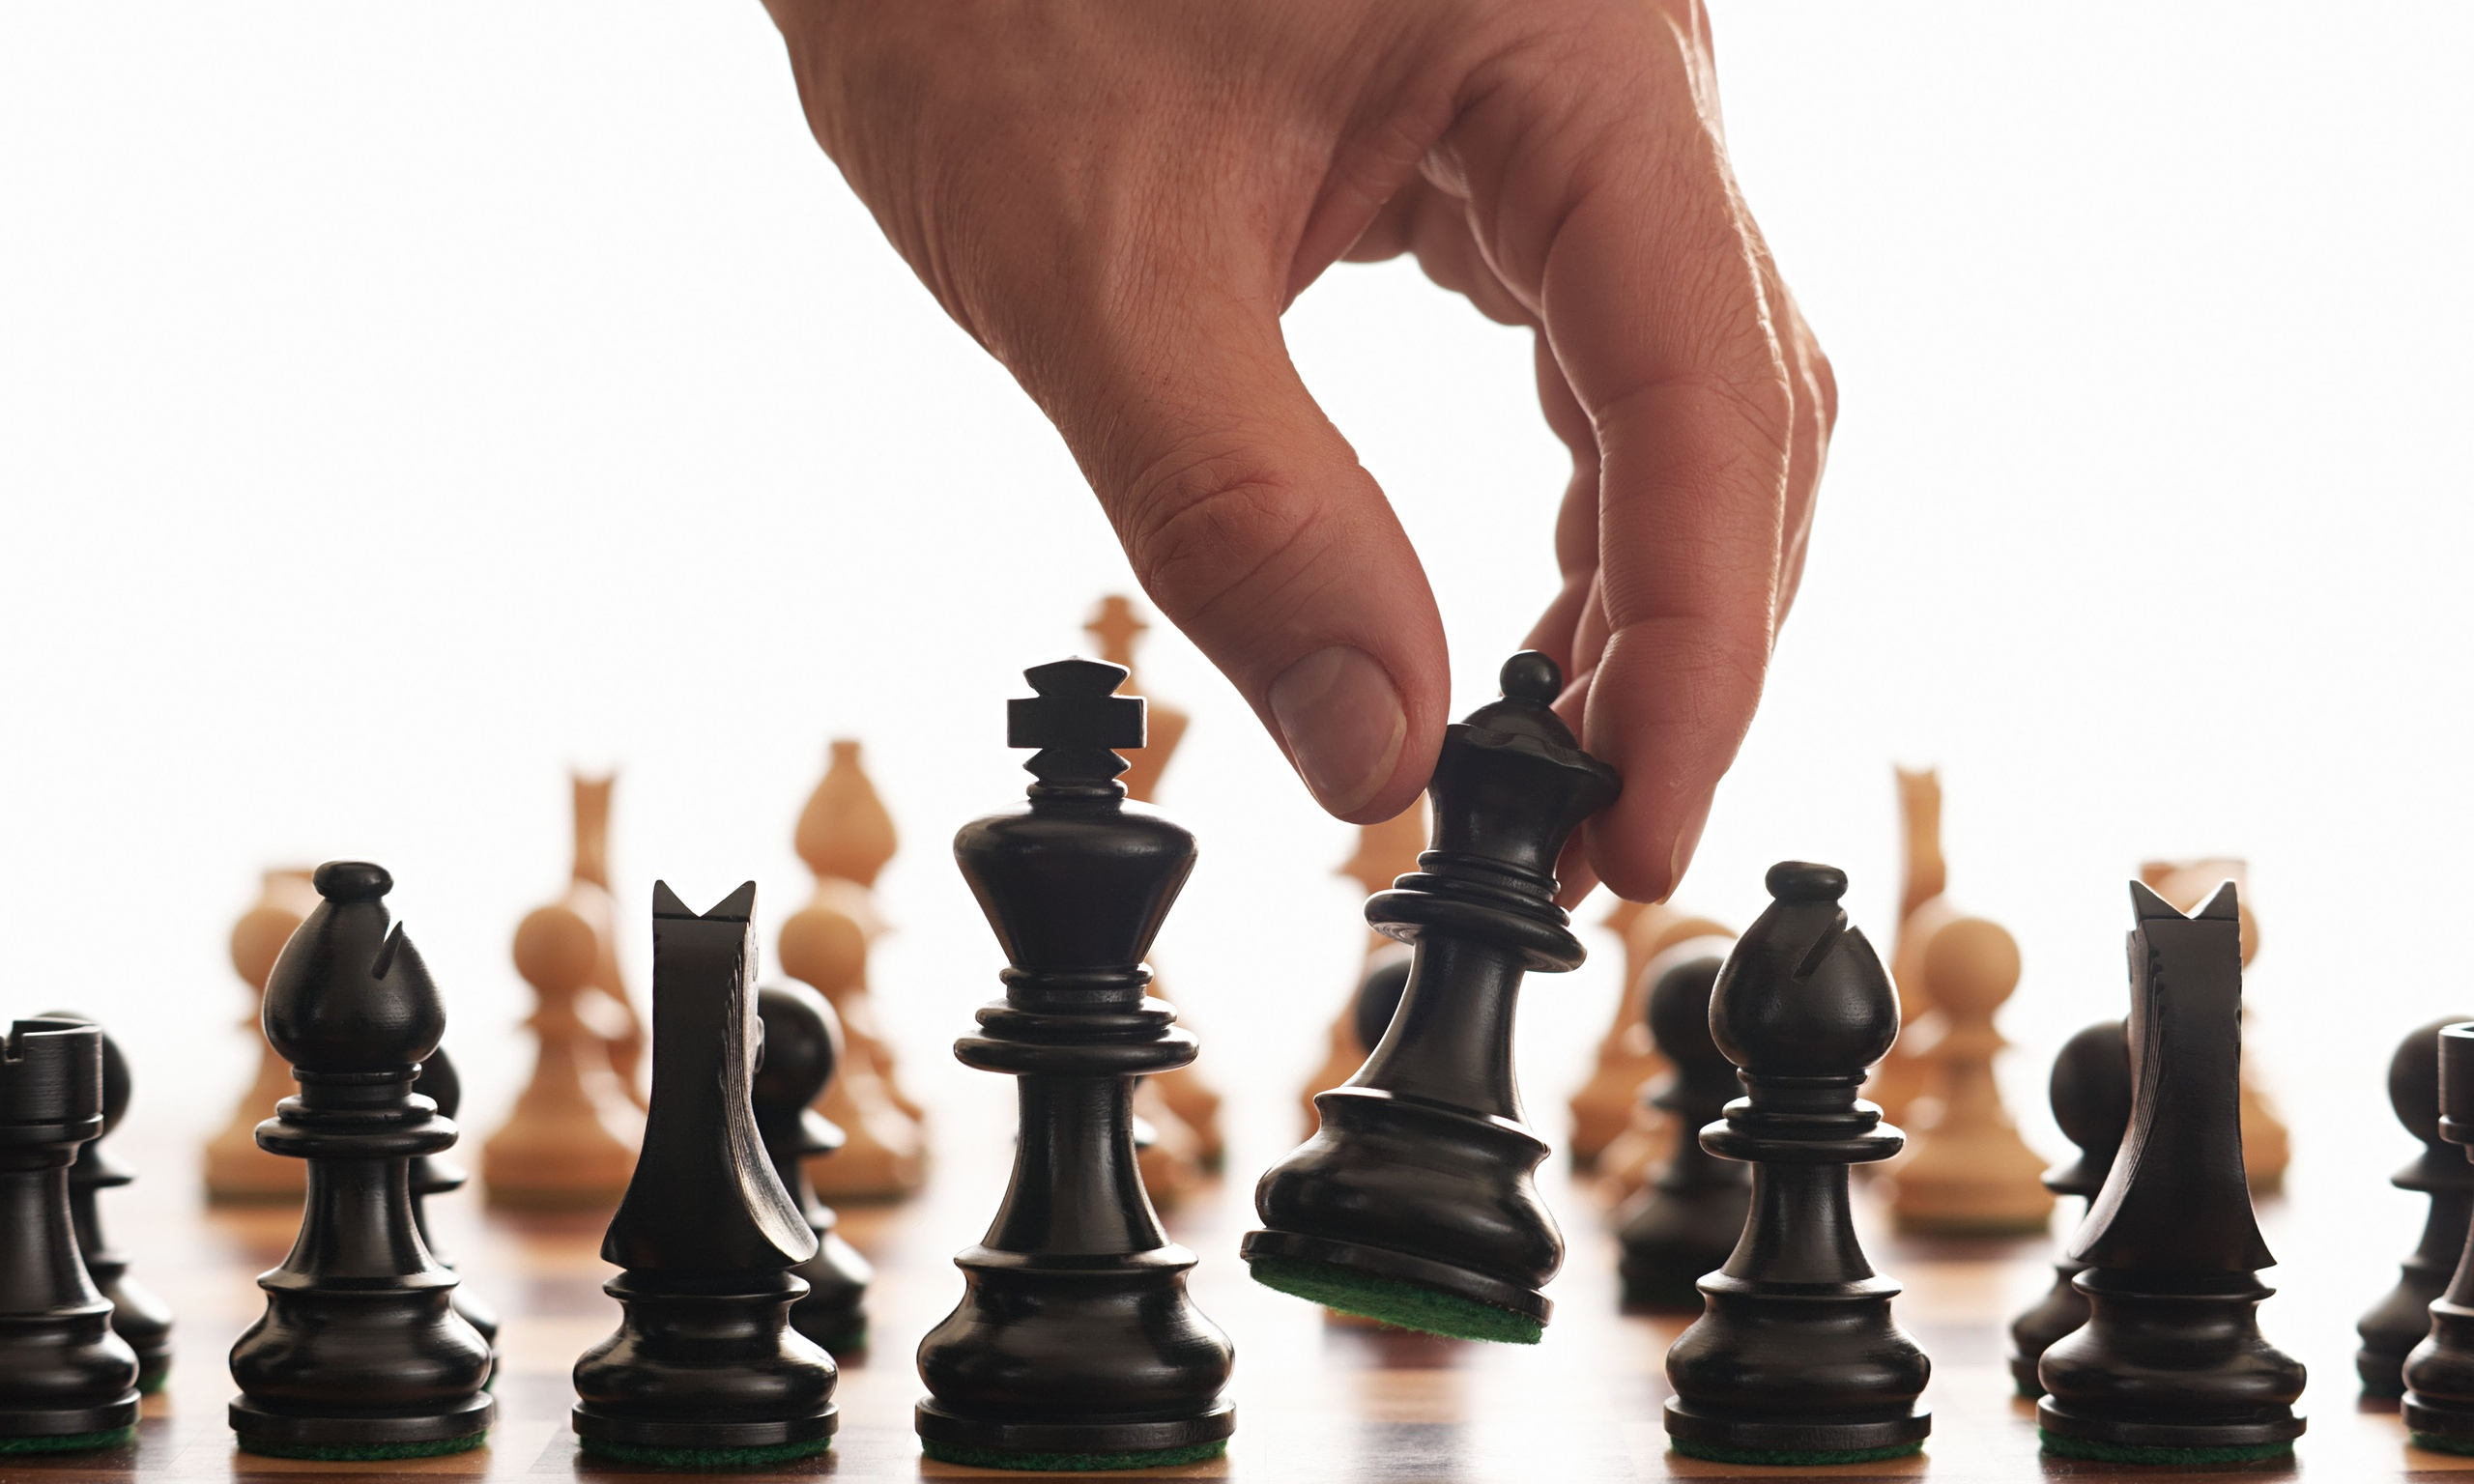 Why chess is really an extreme sport | Stephen Moss ...